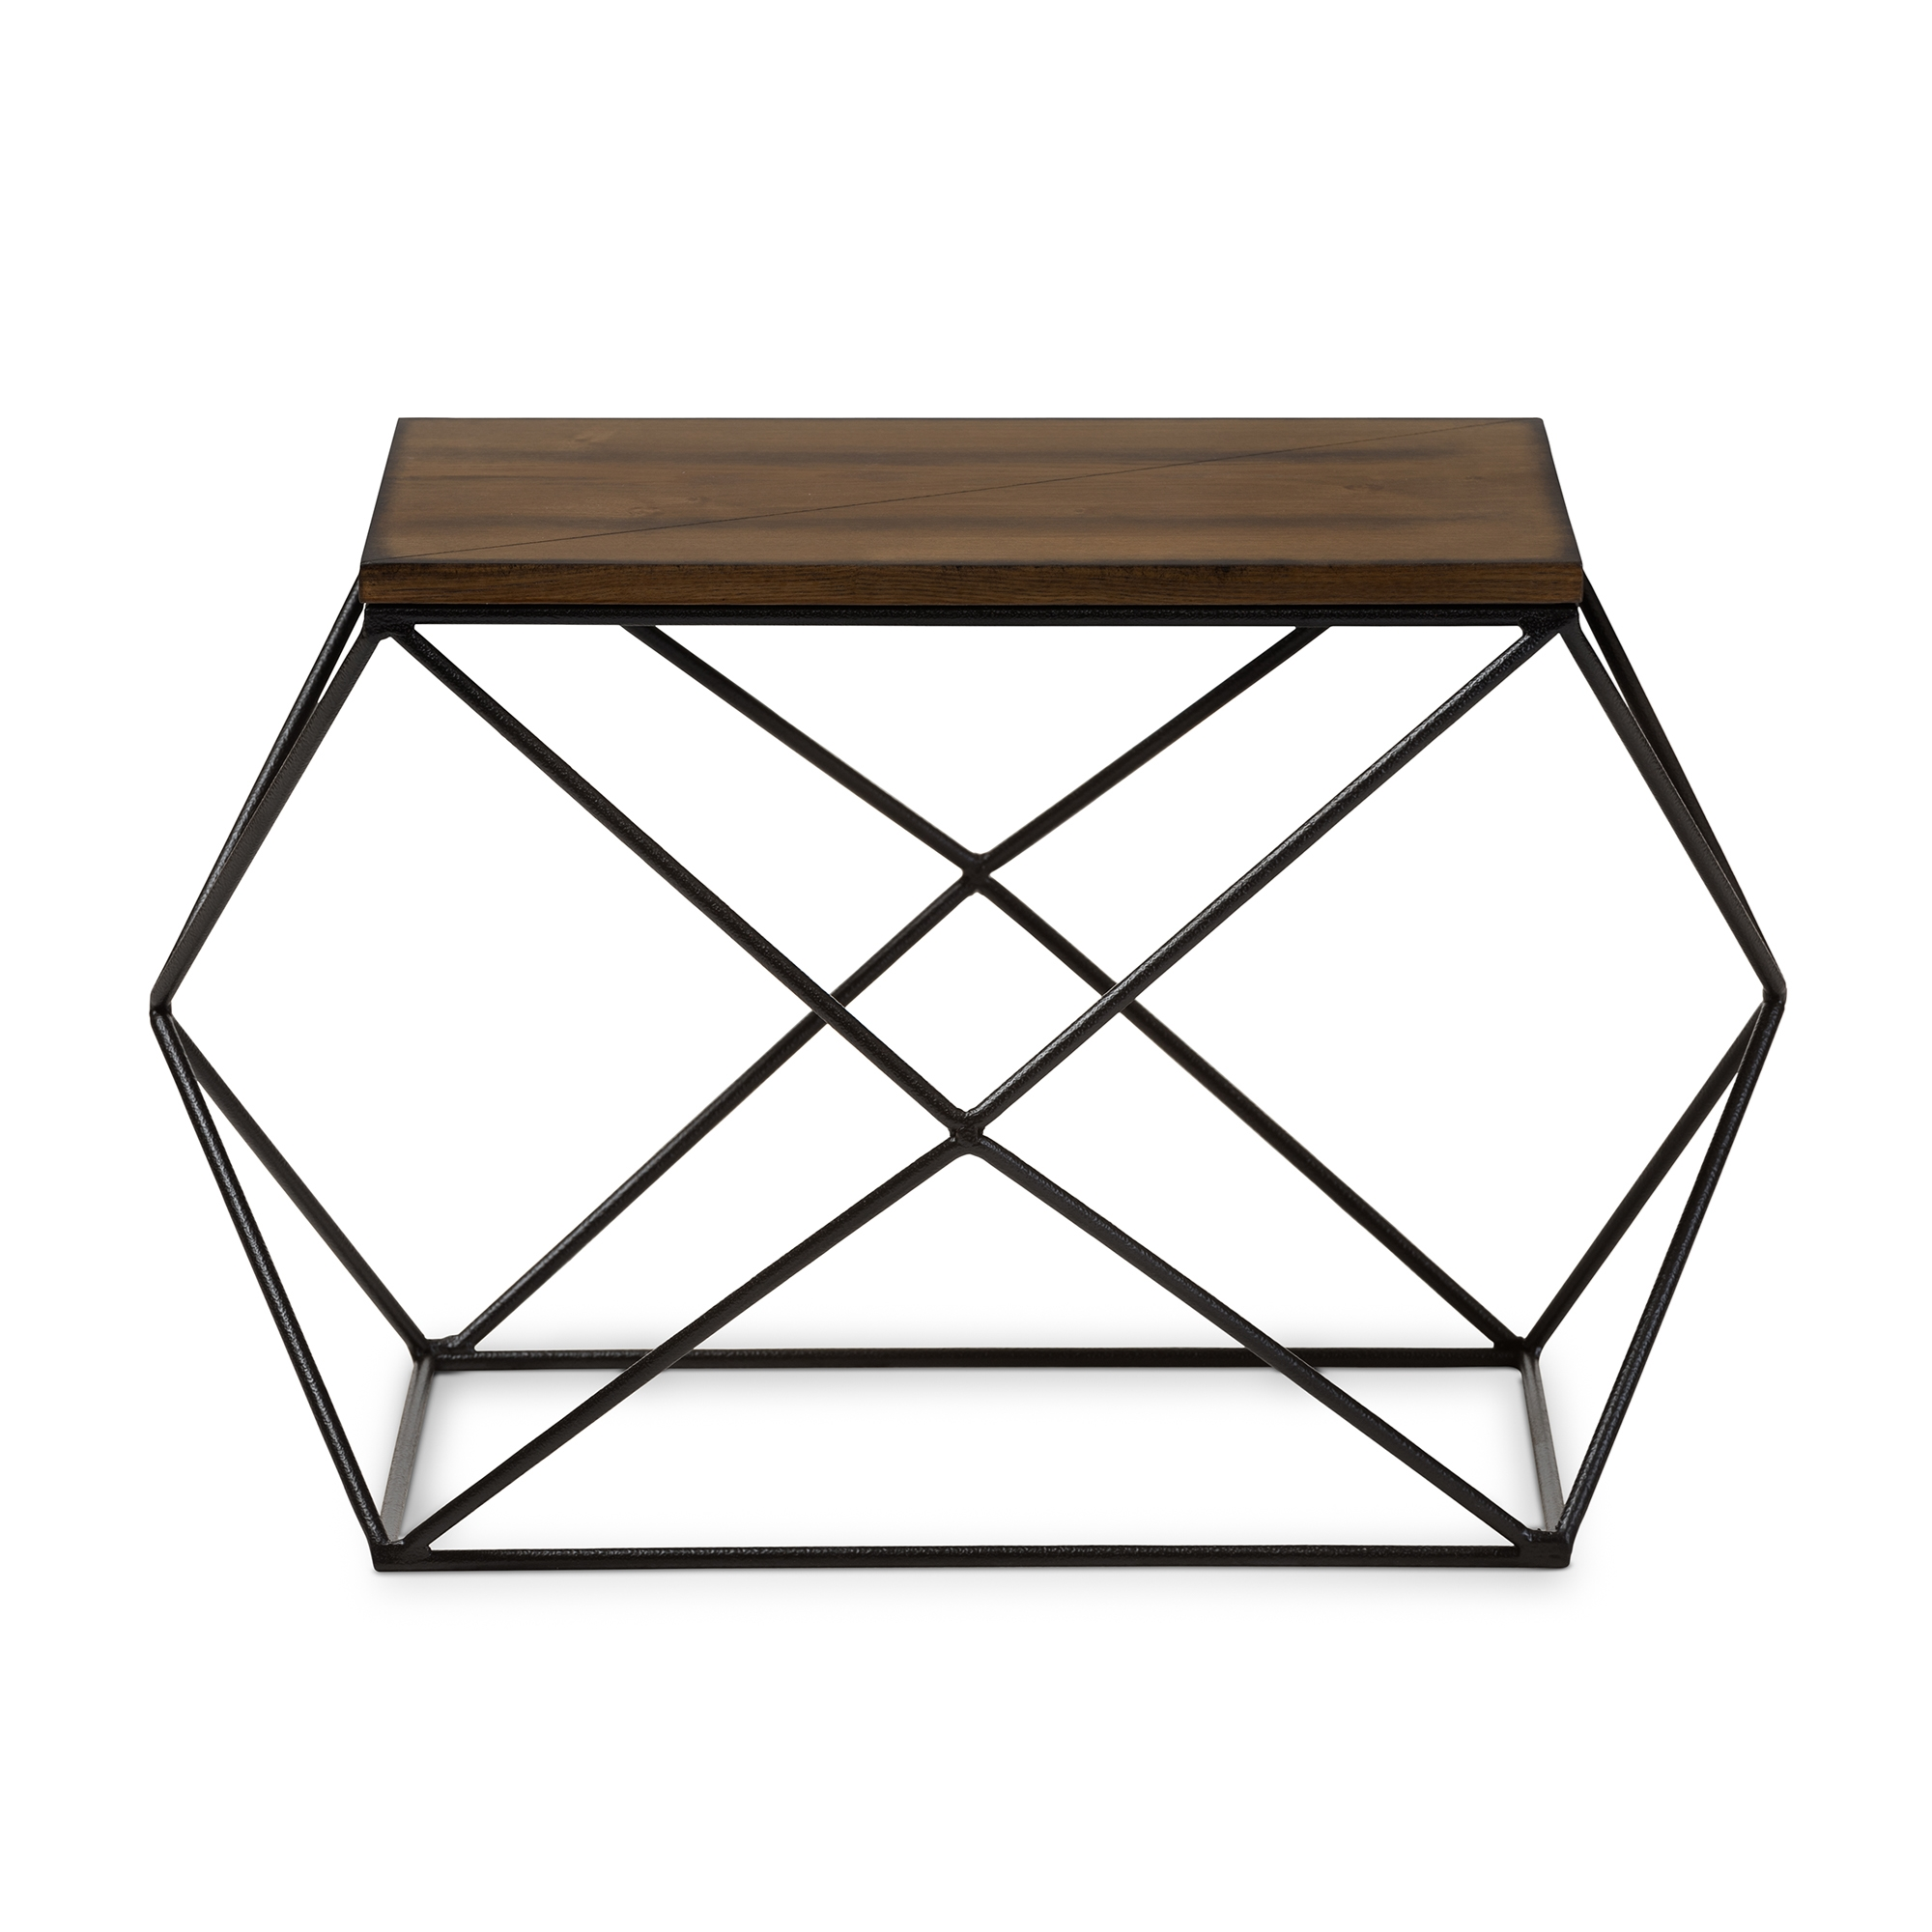 ... Baxton Studio Stilo Rustic Industrial Style Antique Black Textured  Finished Metal Distressed Wood Occasional End Table ...